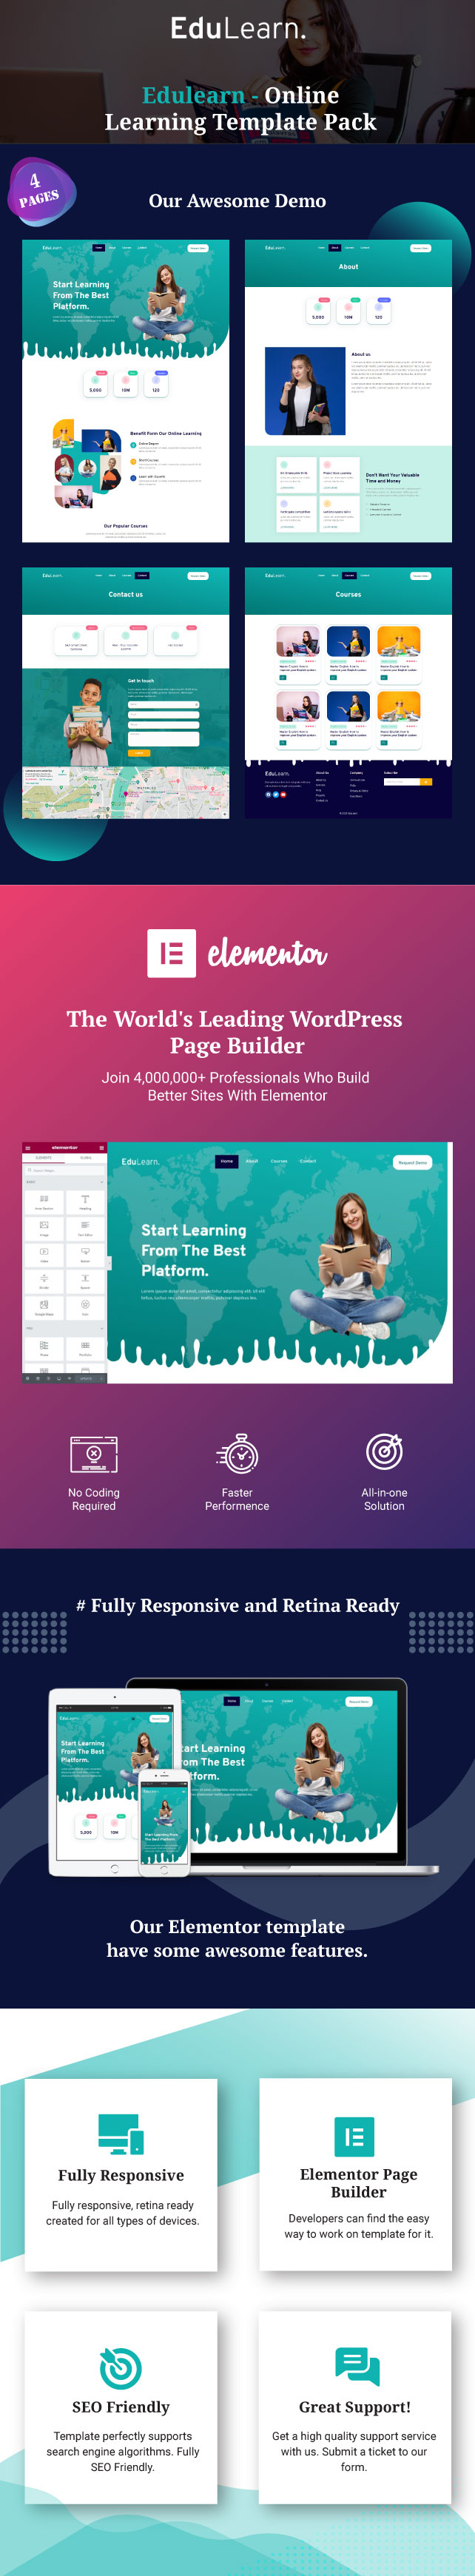 edulearn-online-learning-template-pack